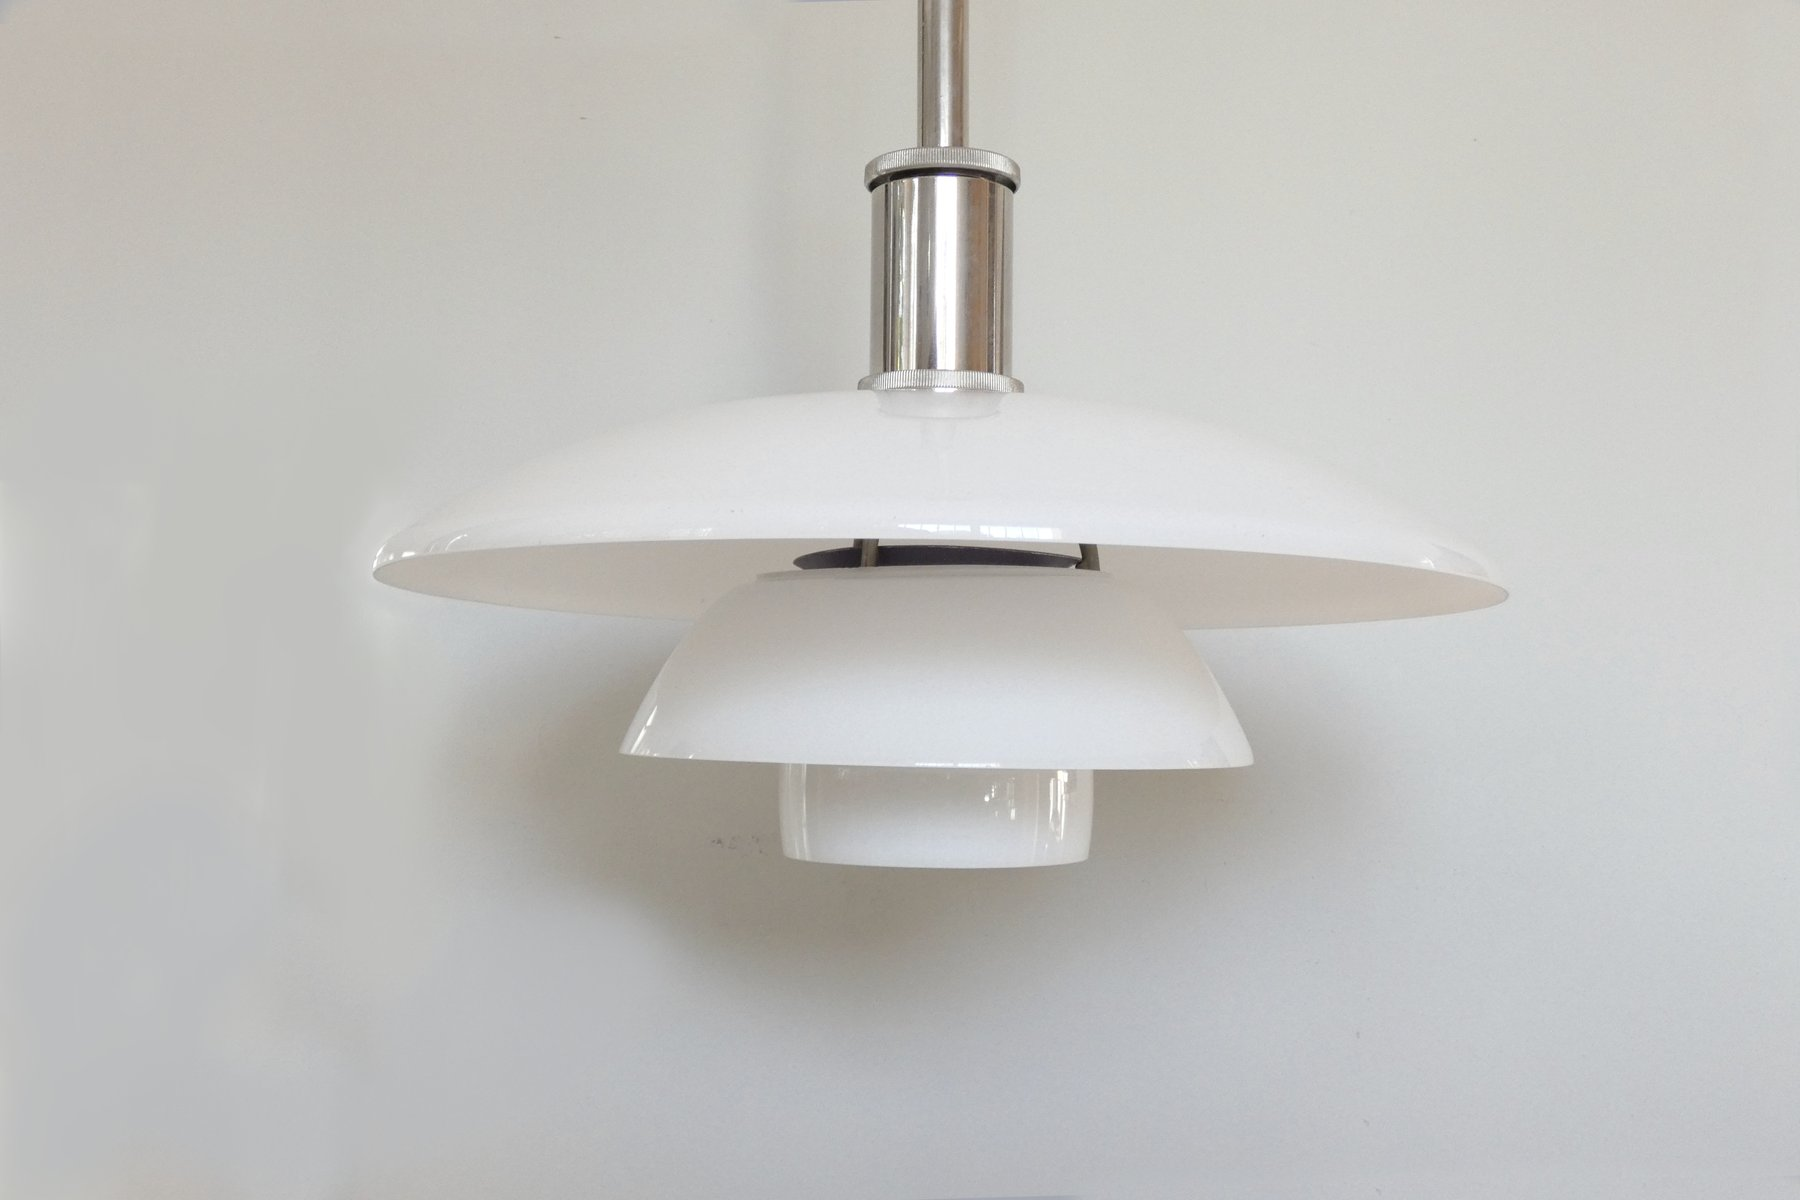 Antique french ceiling light in white opaline glass french pendant lamp height adustable system